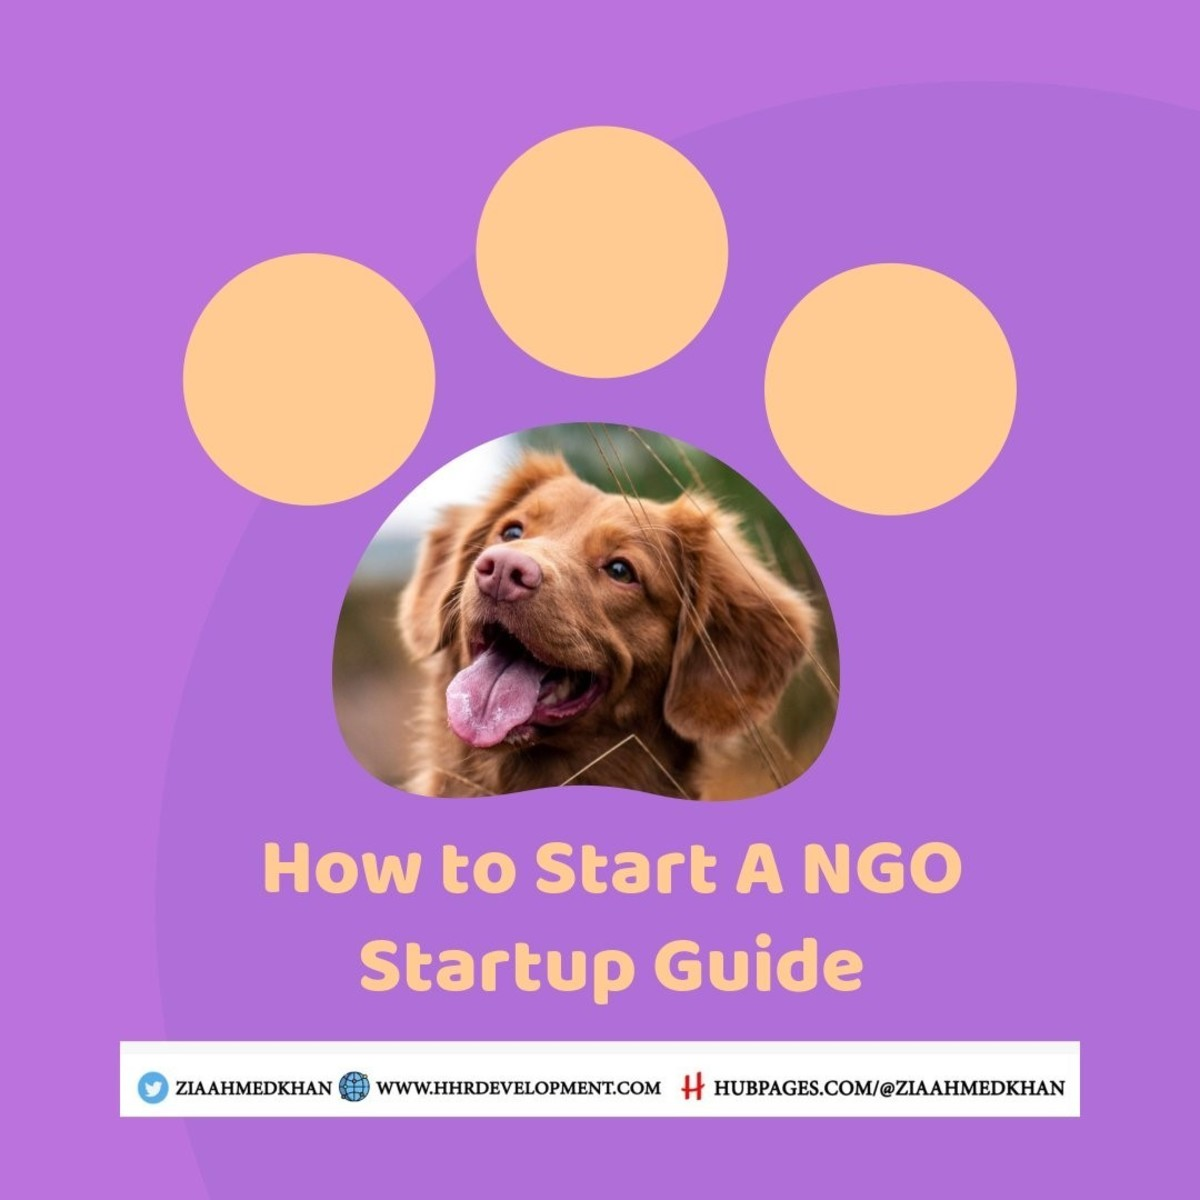 How to Start a NGO